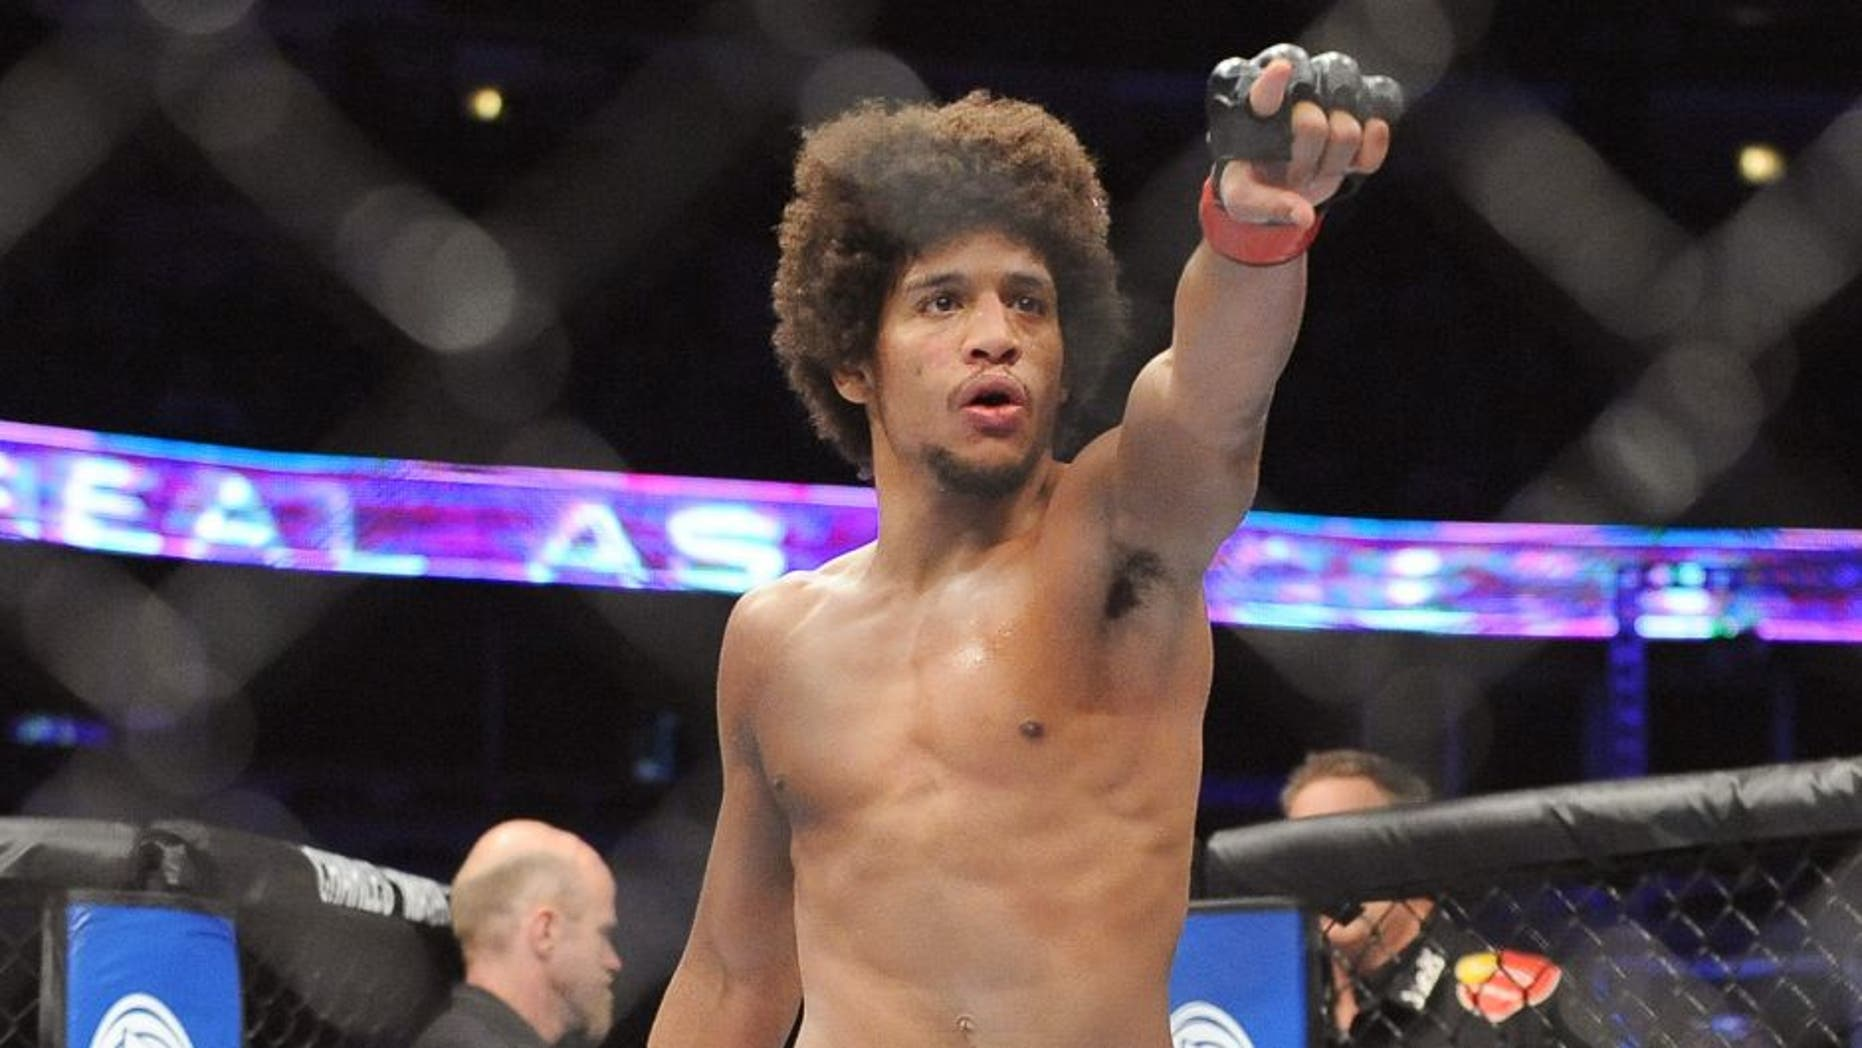 CHICAGO, ILLINOIS - JANUARY 25, 2014: Alex Caceres celebrates after a submission win after a bantamweight bout during UFC on Fox 10 Henderson v Thomson at United Center in Chicago, Illinois. (Photo by David Dermer/Diamond Images/Getty Images)